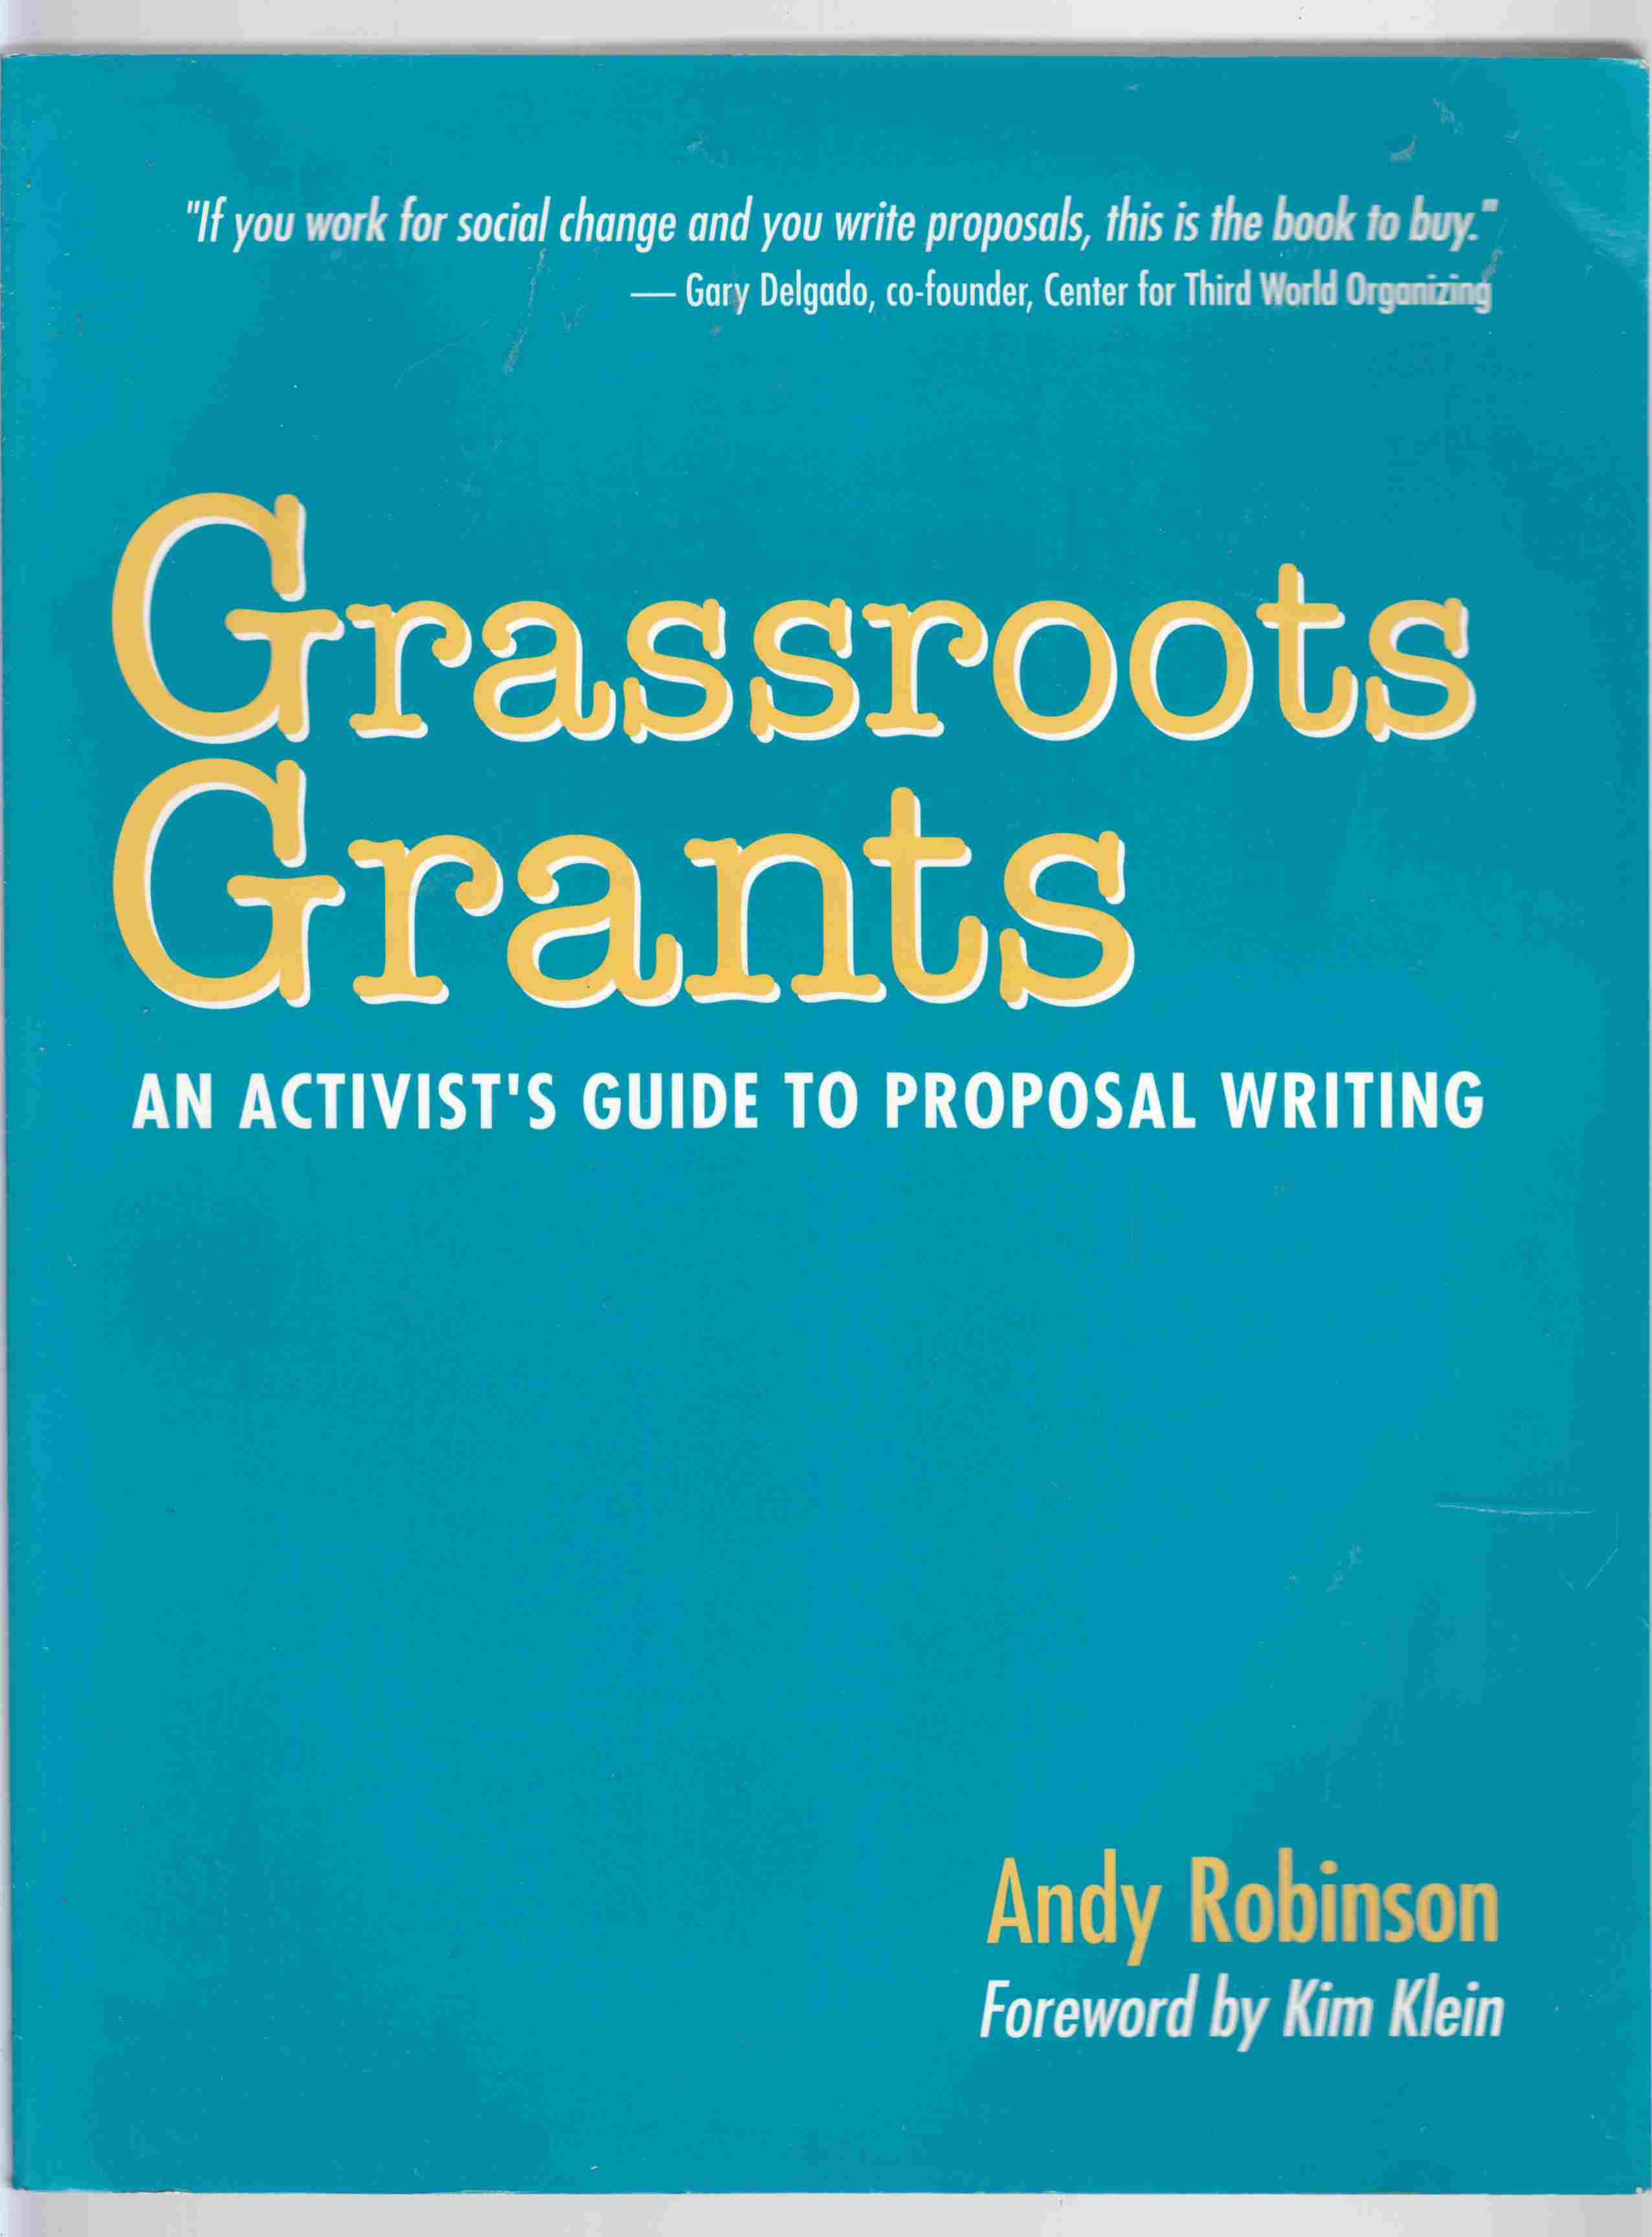 Image for Grassroots Grants: An Activist's Guide to Proposal Writing